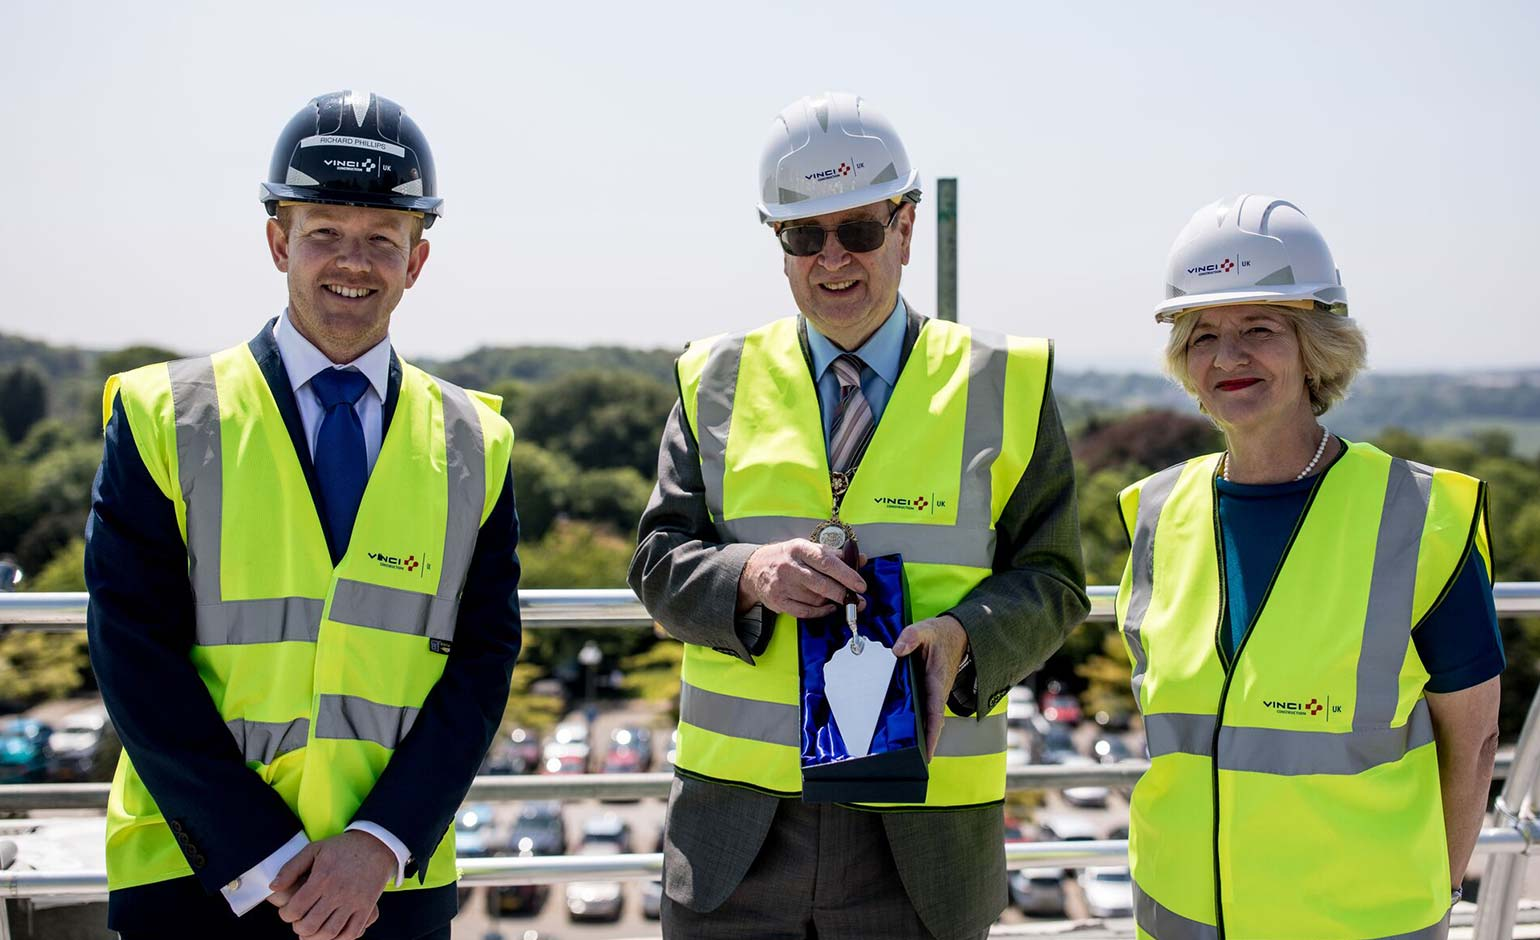 University of Bath celebrates 'topping out' of new student accommodation